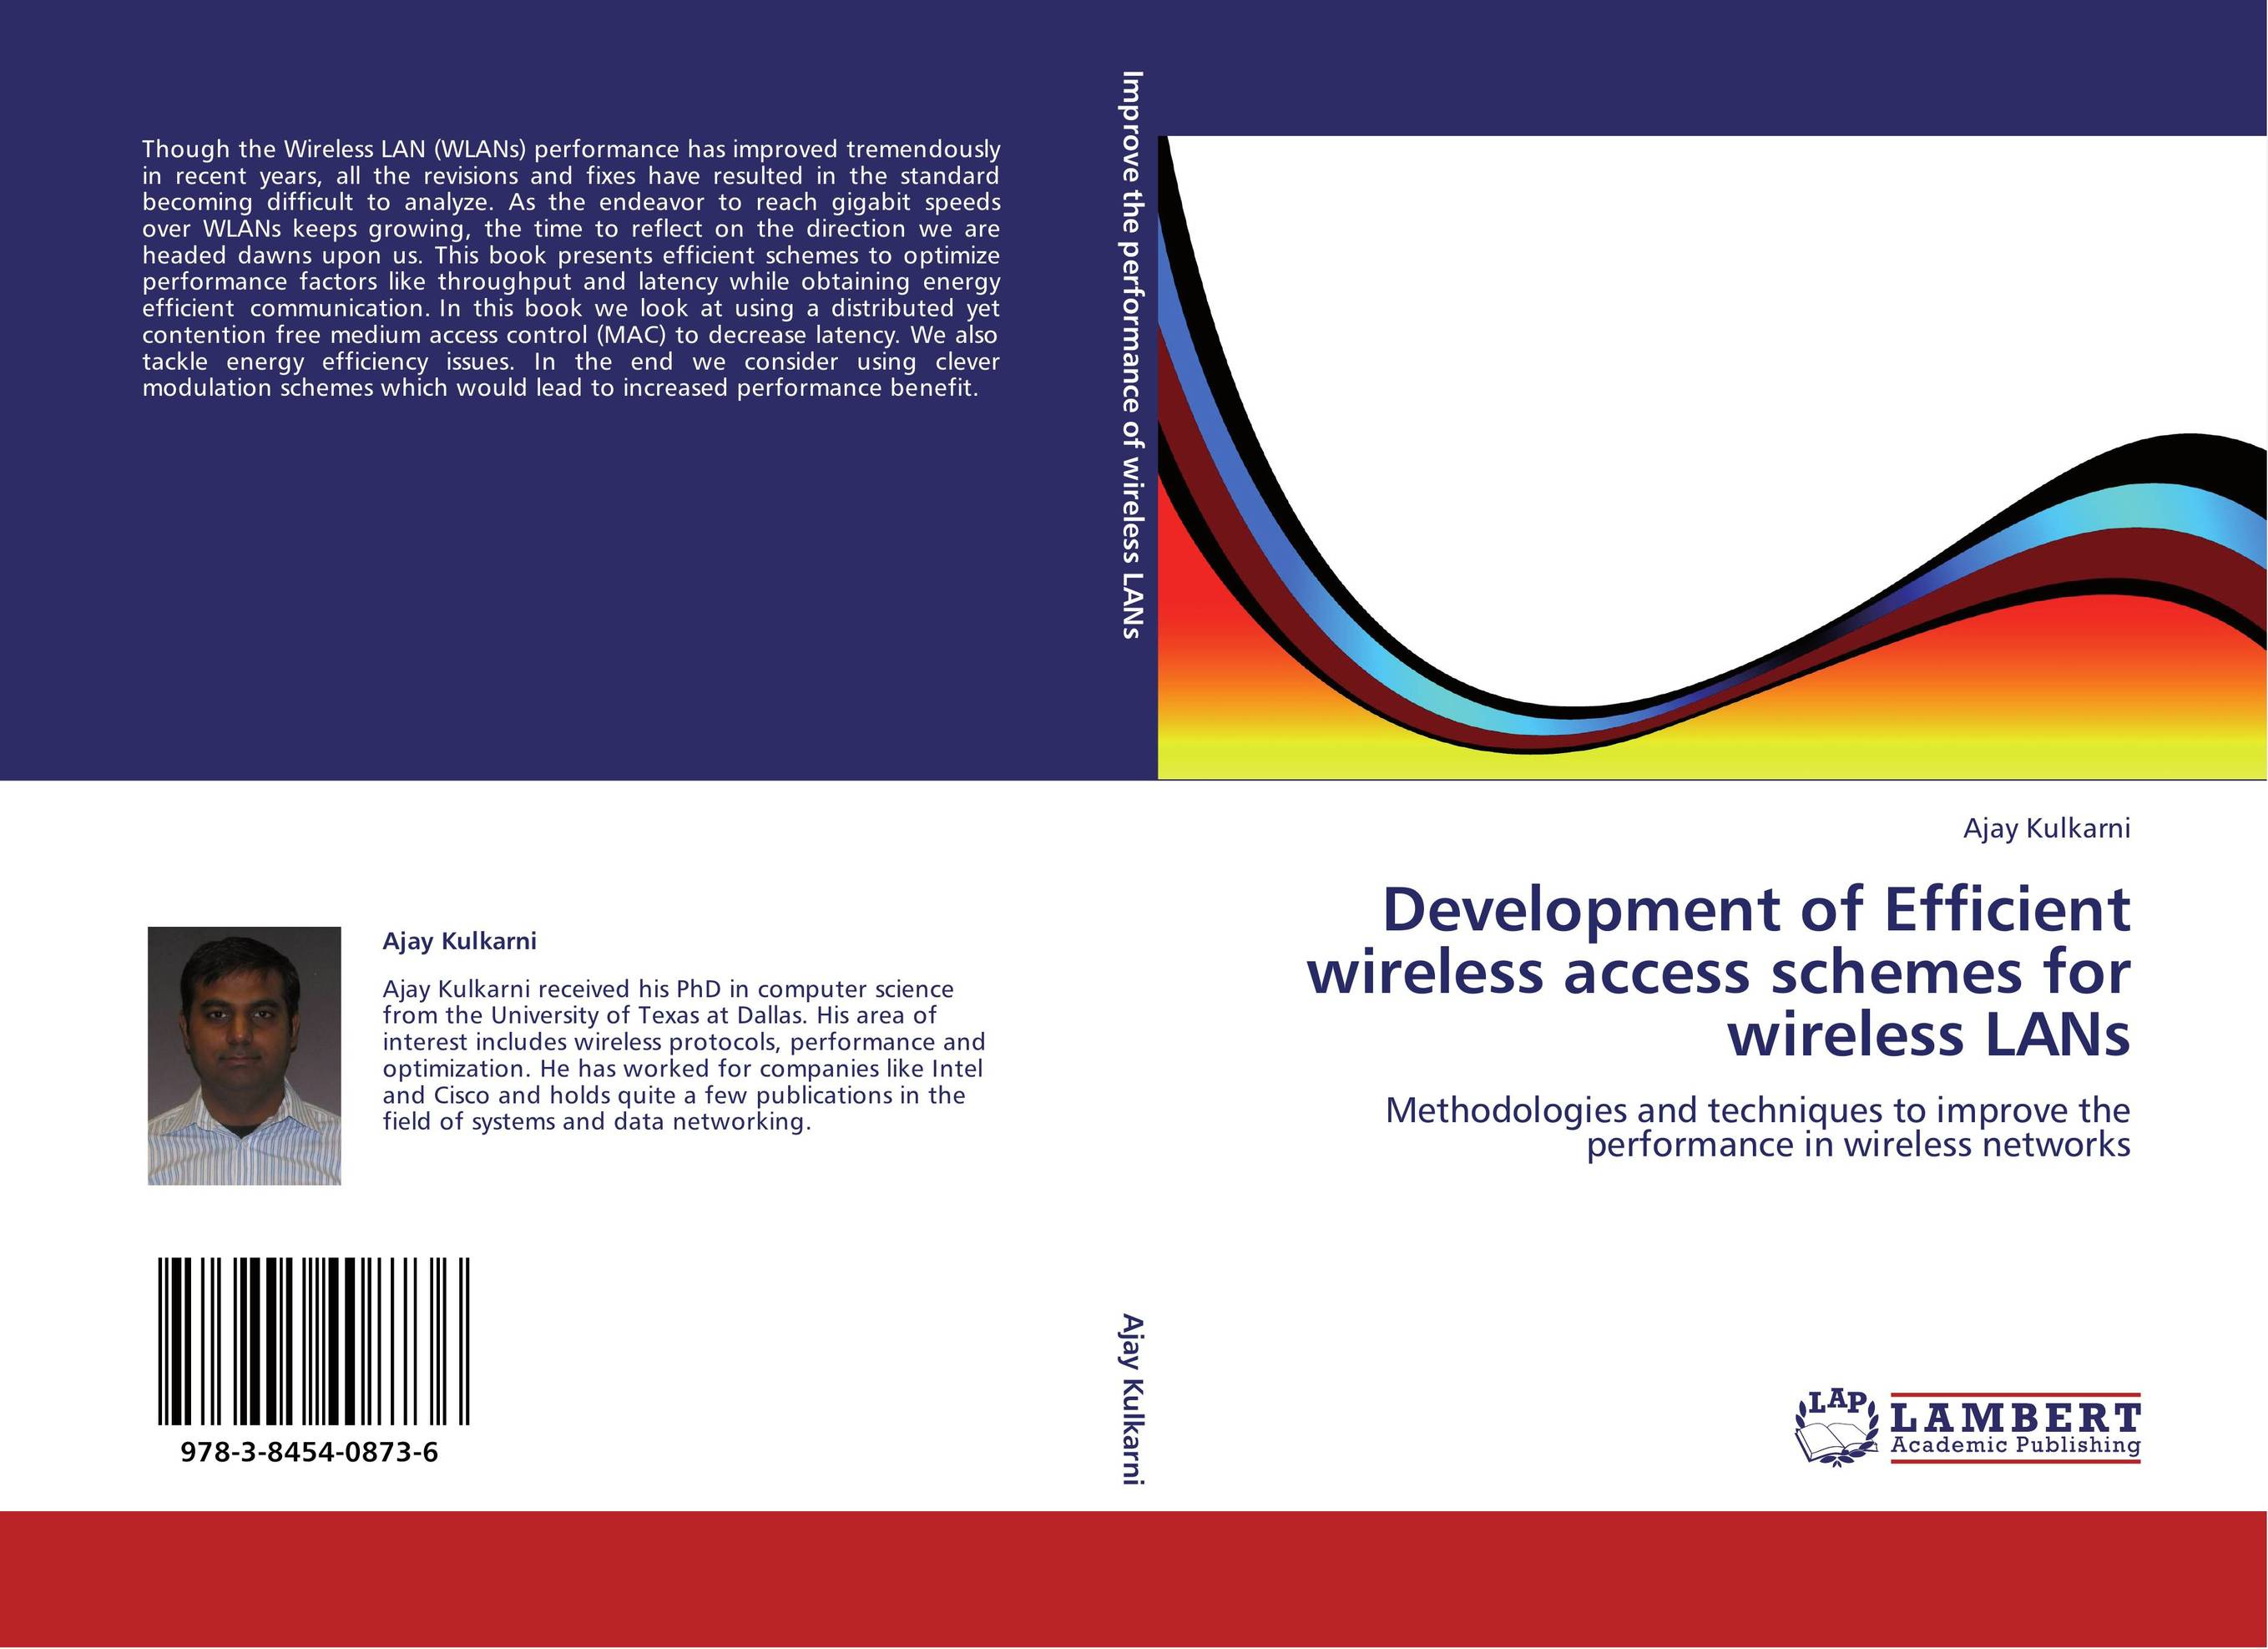 application-specific protocol architectures for wireless networks phd thesis Application specific protocol architectures for wireless networksthesis hari balakrishnan: theses supervised at mit , 2000152832000an application-specific protocol architecture for wireless microsensor networkswb heinzelman, ap chandrakasan, h balakrishnanieee transactions on.